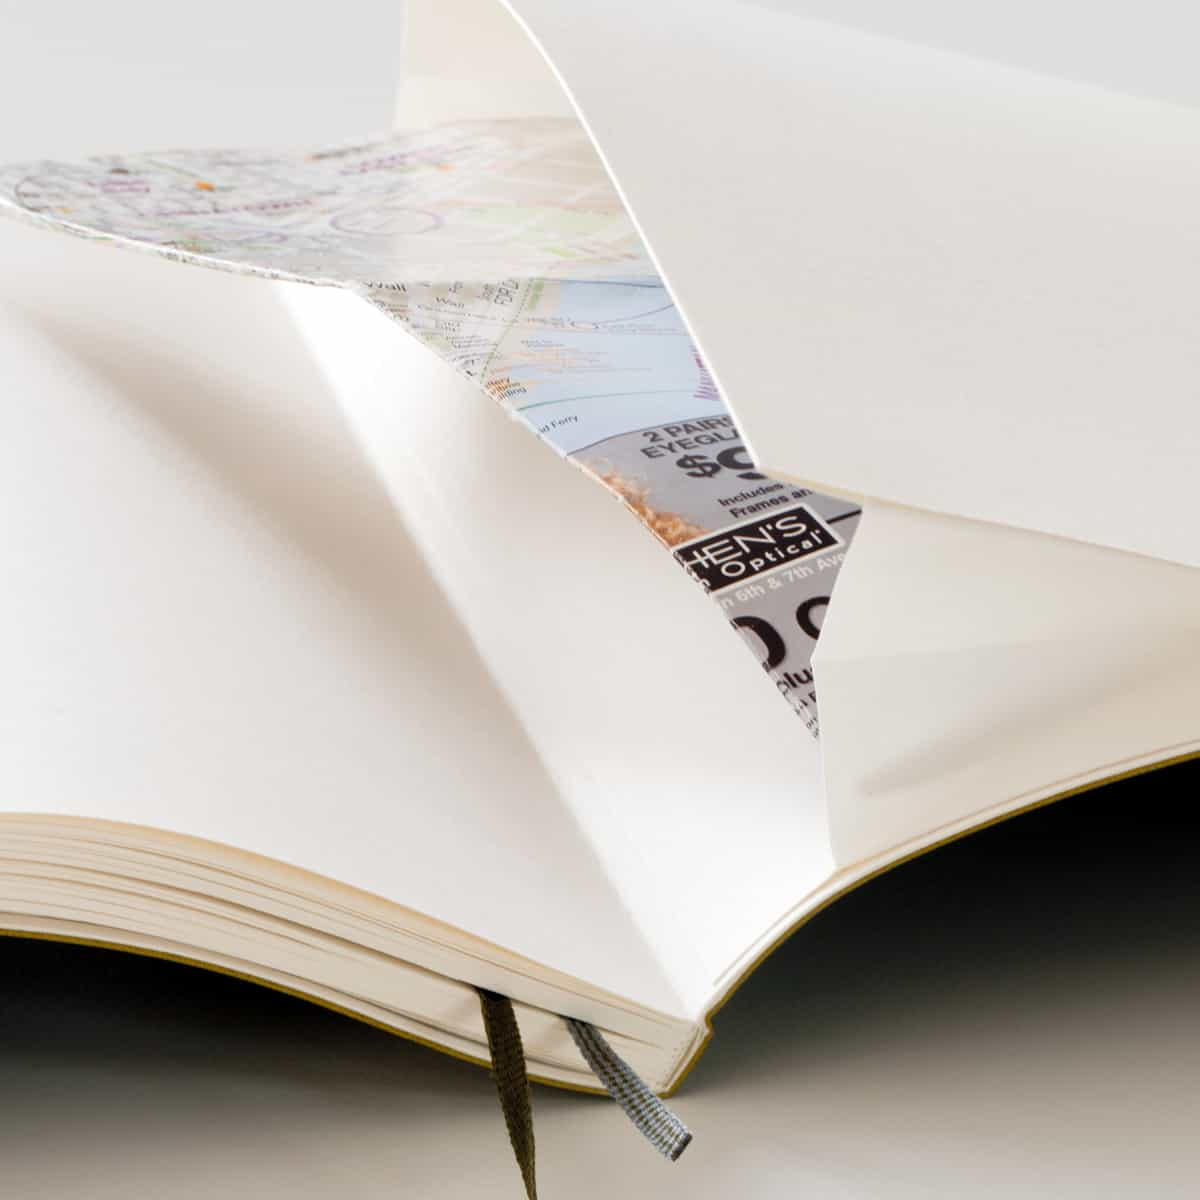 View of the gusset pocket of the Notebook Pocket A6.